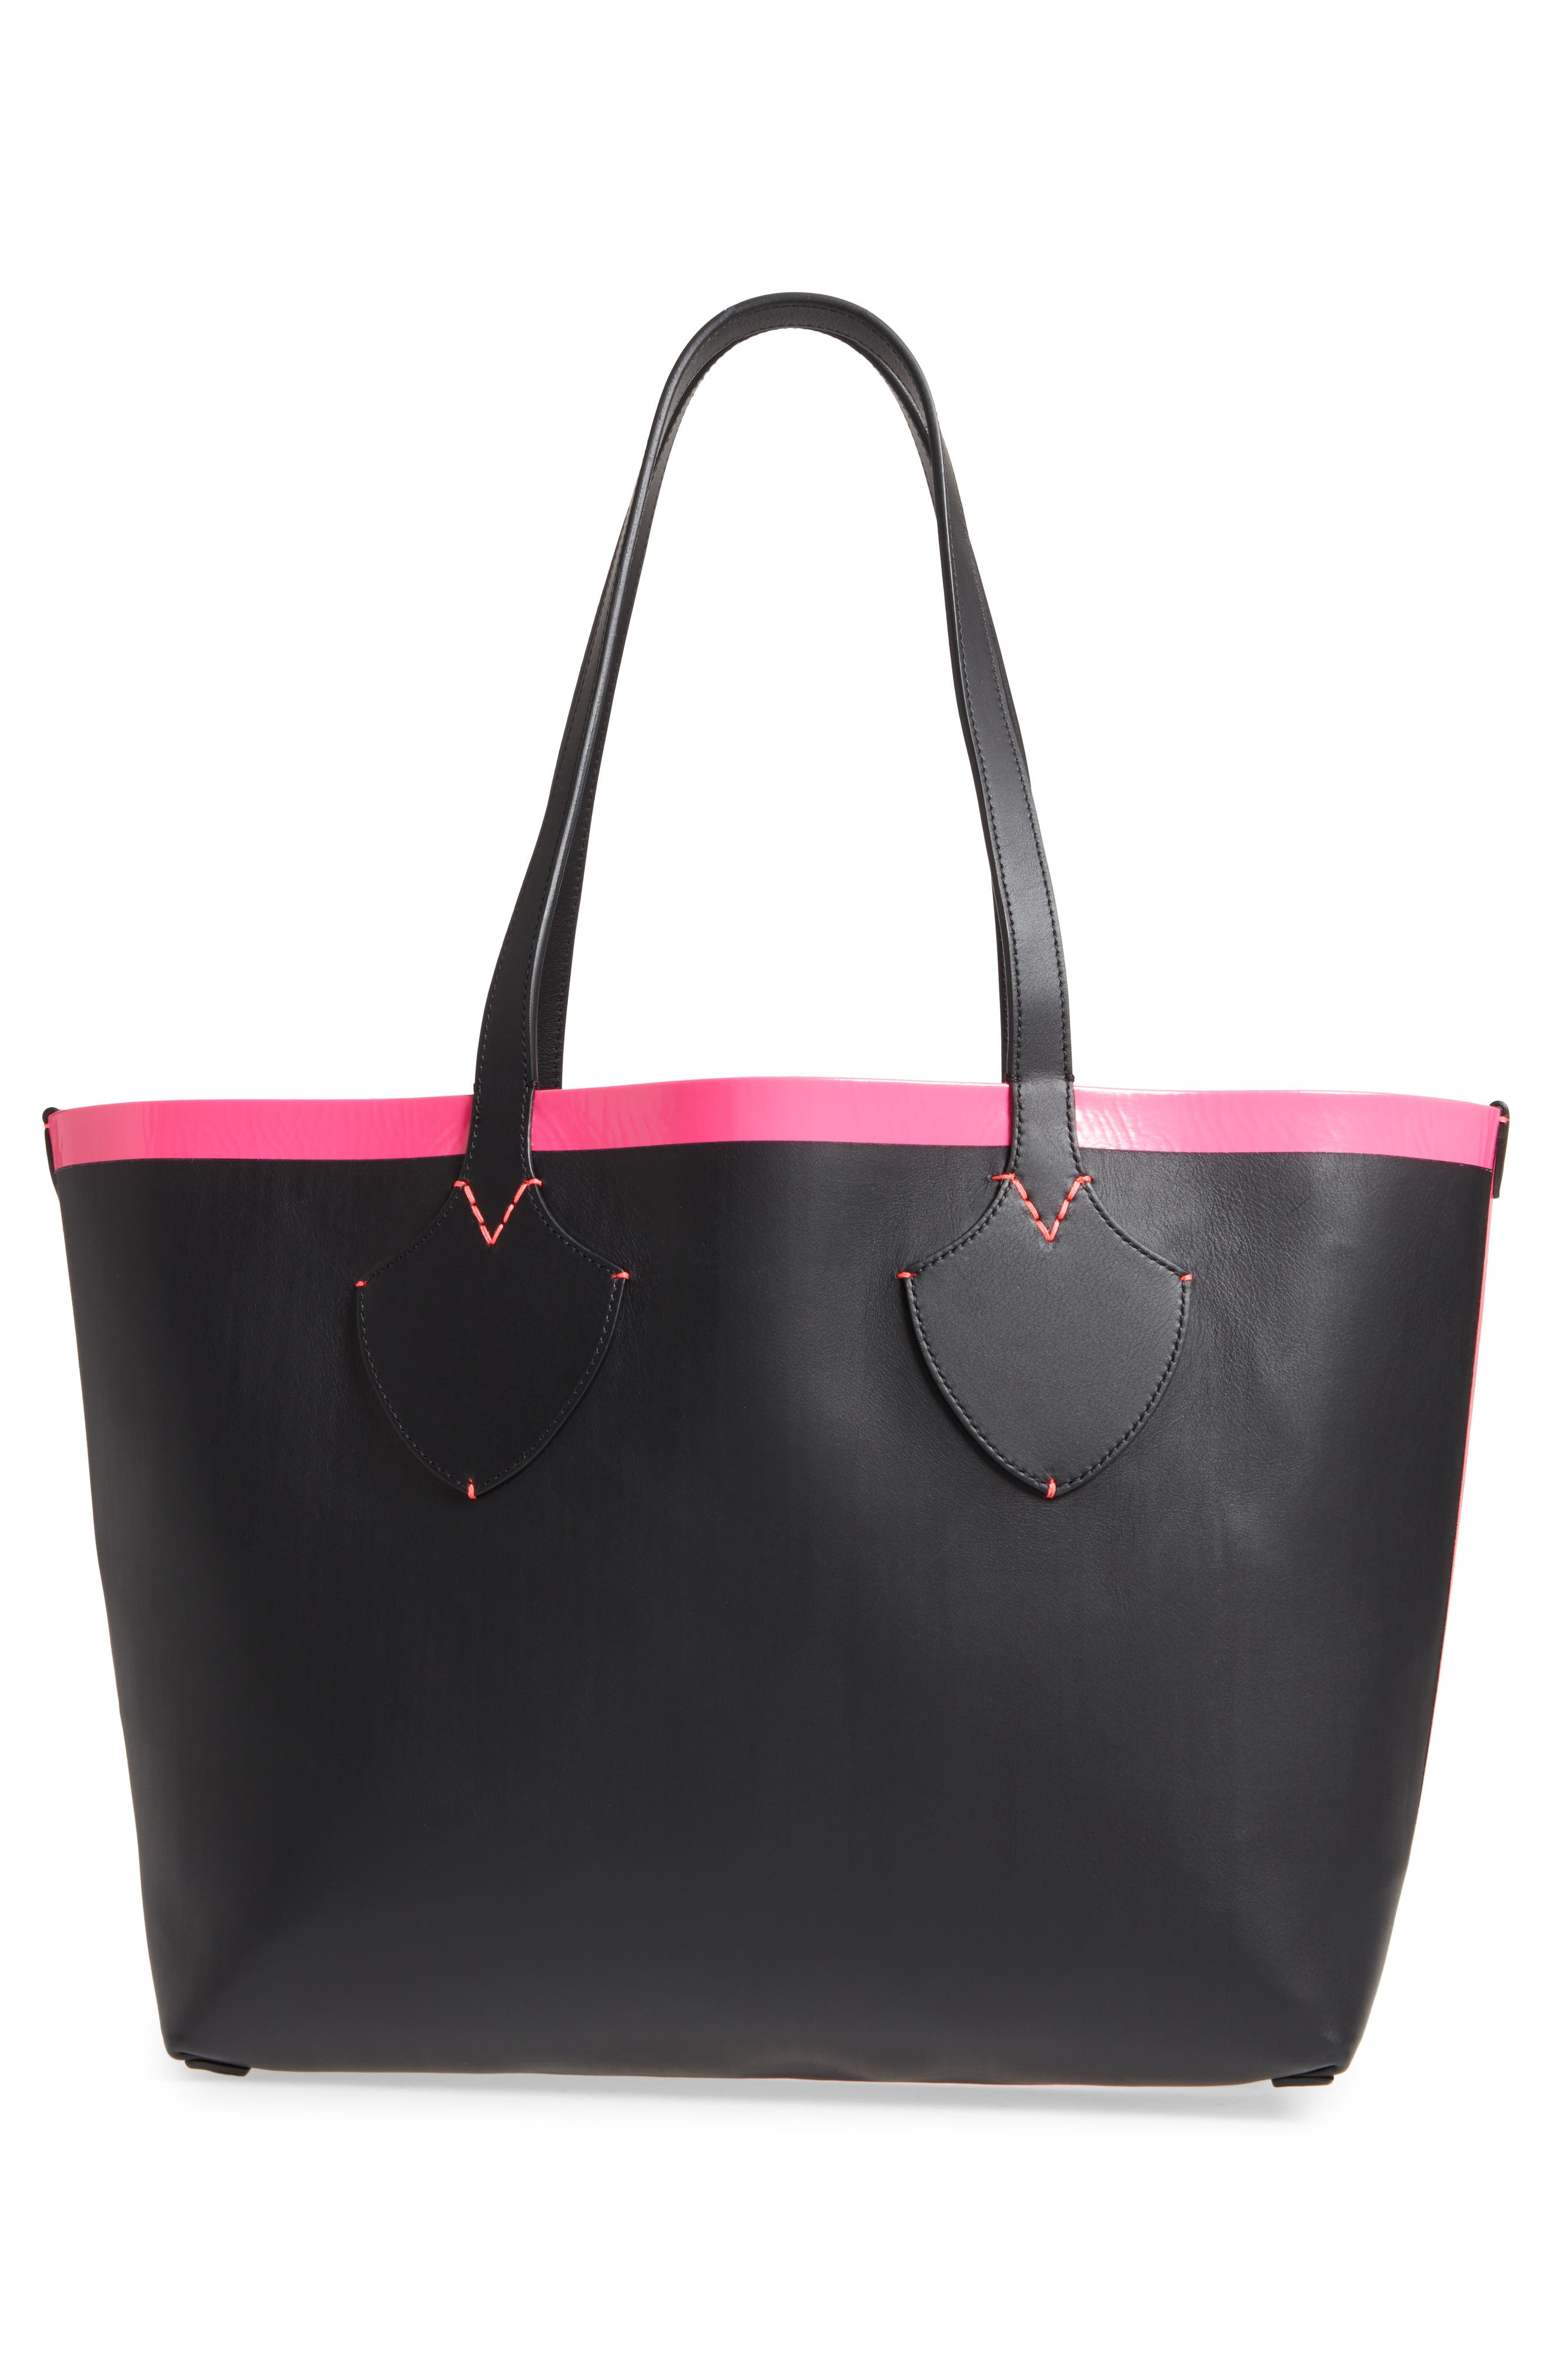 Medium Reversible Check Canvas & Leather Tote,                             Alternate thumbnail 3, color,                             Black/ Neon Pink